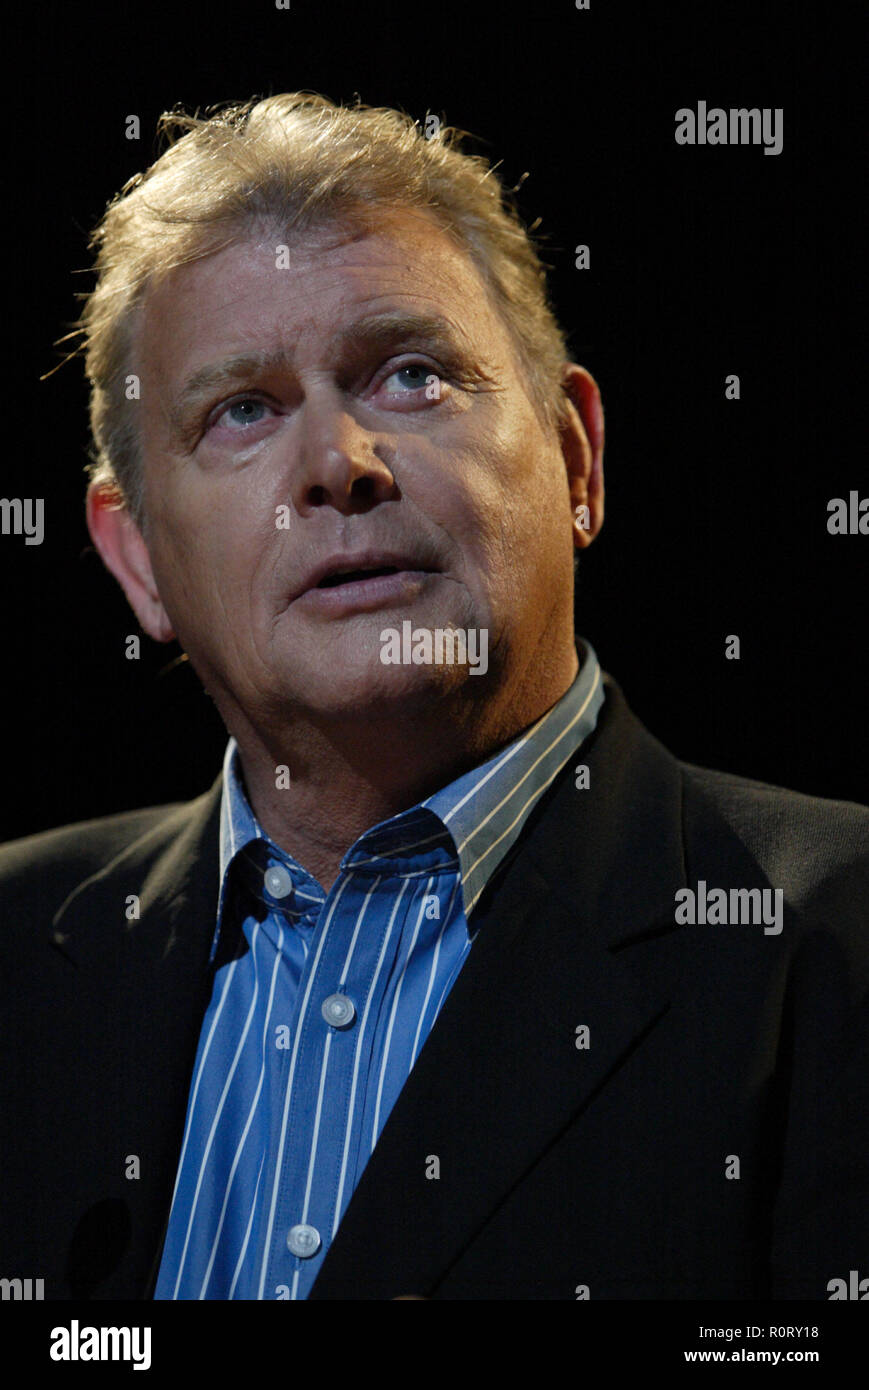 John Farnham holds a press conference at the Lyric Theatre in Star City Casino to announce his 'Live By Demand' tour being held in small, intimate venues across Australia in September and October of 2009.   During the press conference, Farnham stated that his return to live music was inspired by Chris Martin and Coldplay after they invited him to share the stage for their performance during the Sound Relief concerts held simultaneously in Sydney and Melbourne on March 14, 2009, to raise funds for victims of Australian bushfires.  Farnham also declared that his fondness for his fan-base inspire - Stock Image